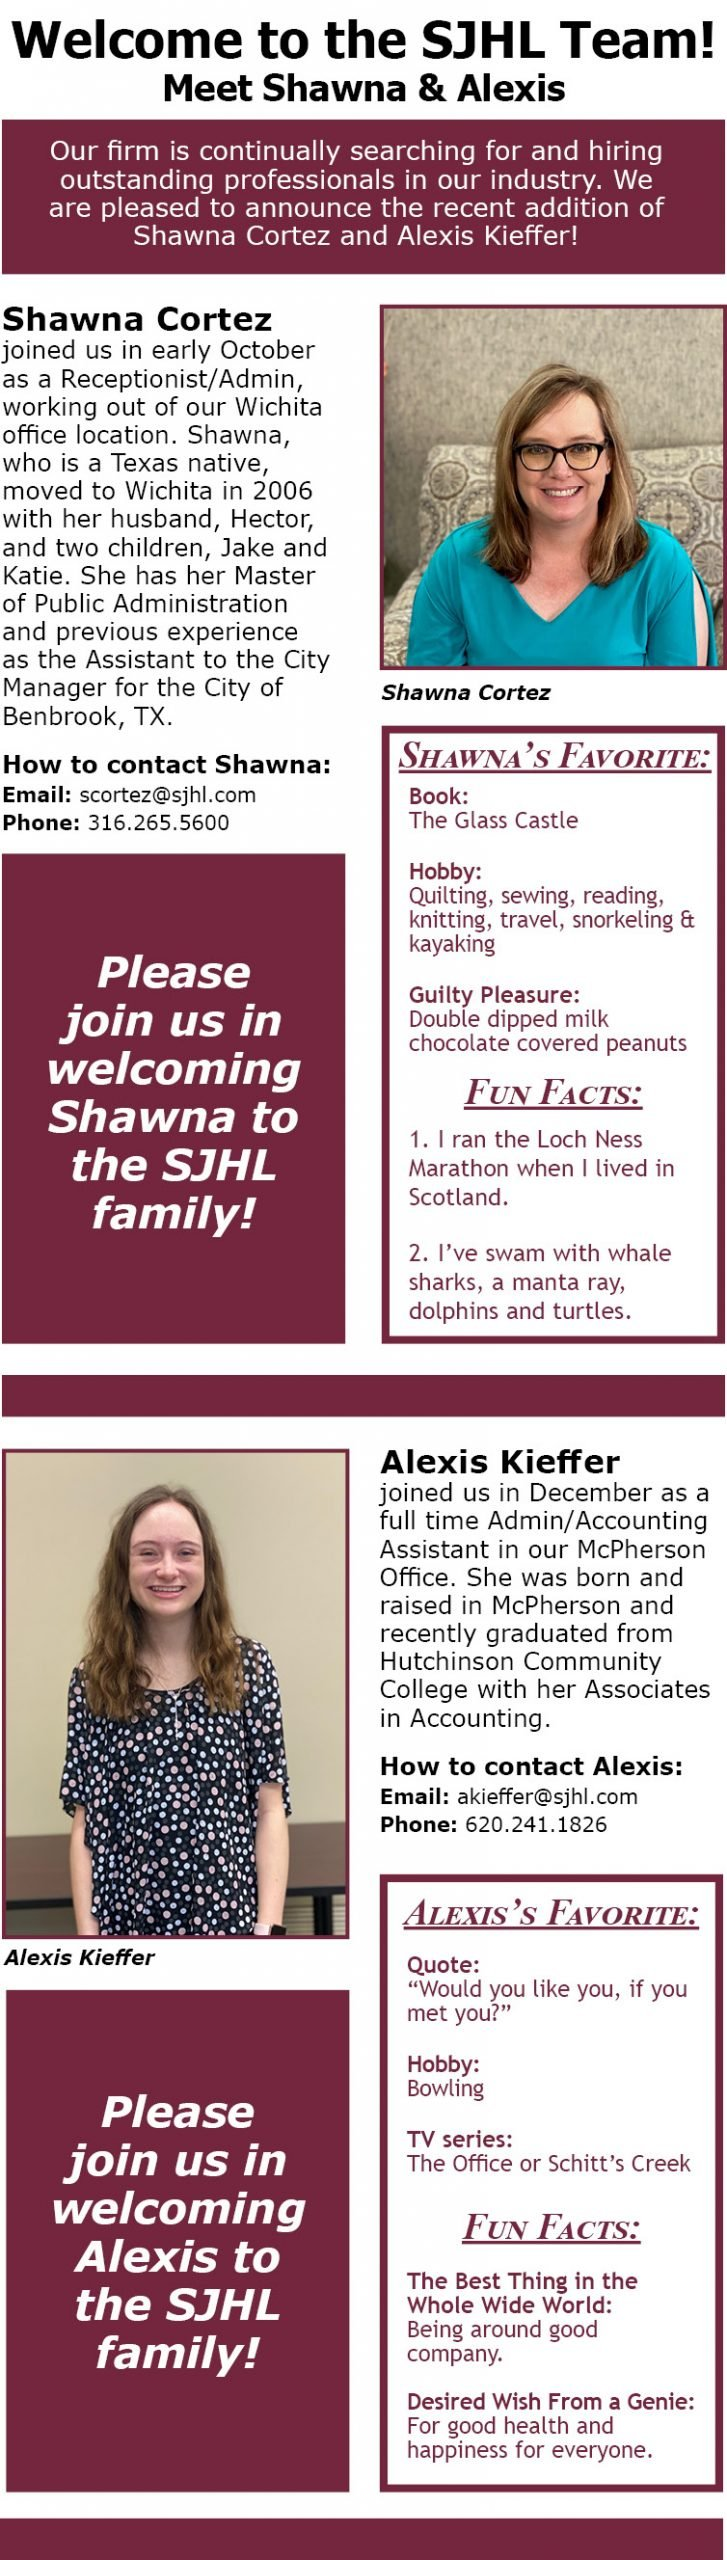 Welcome Shawna and Alexis